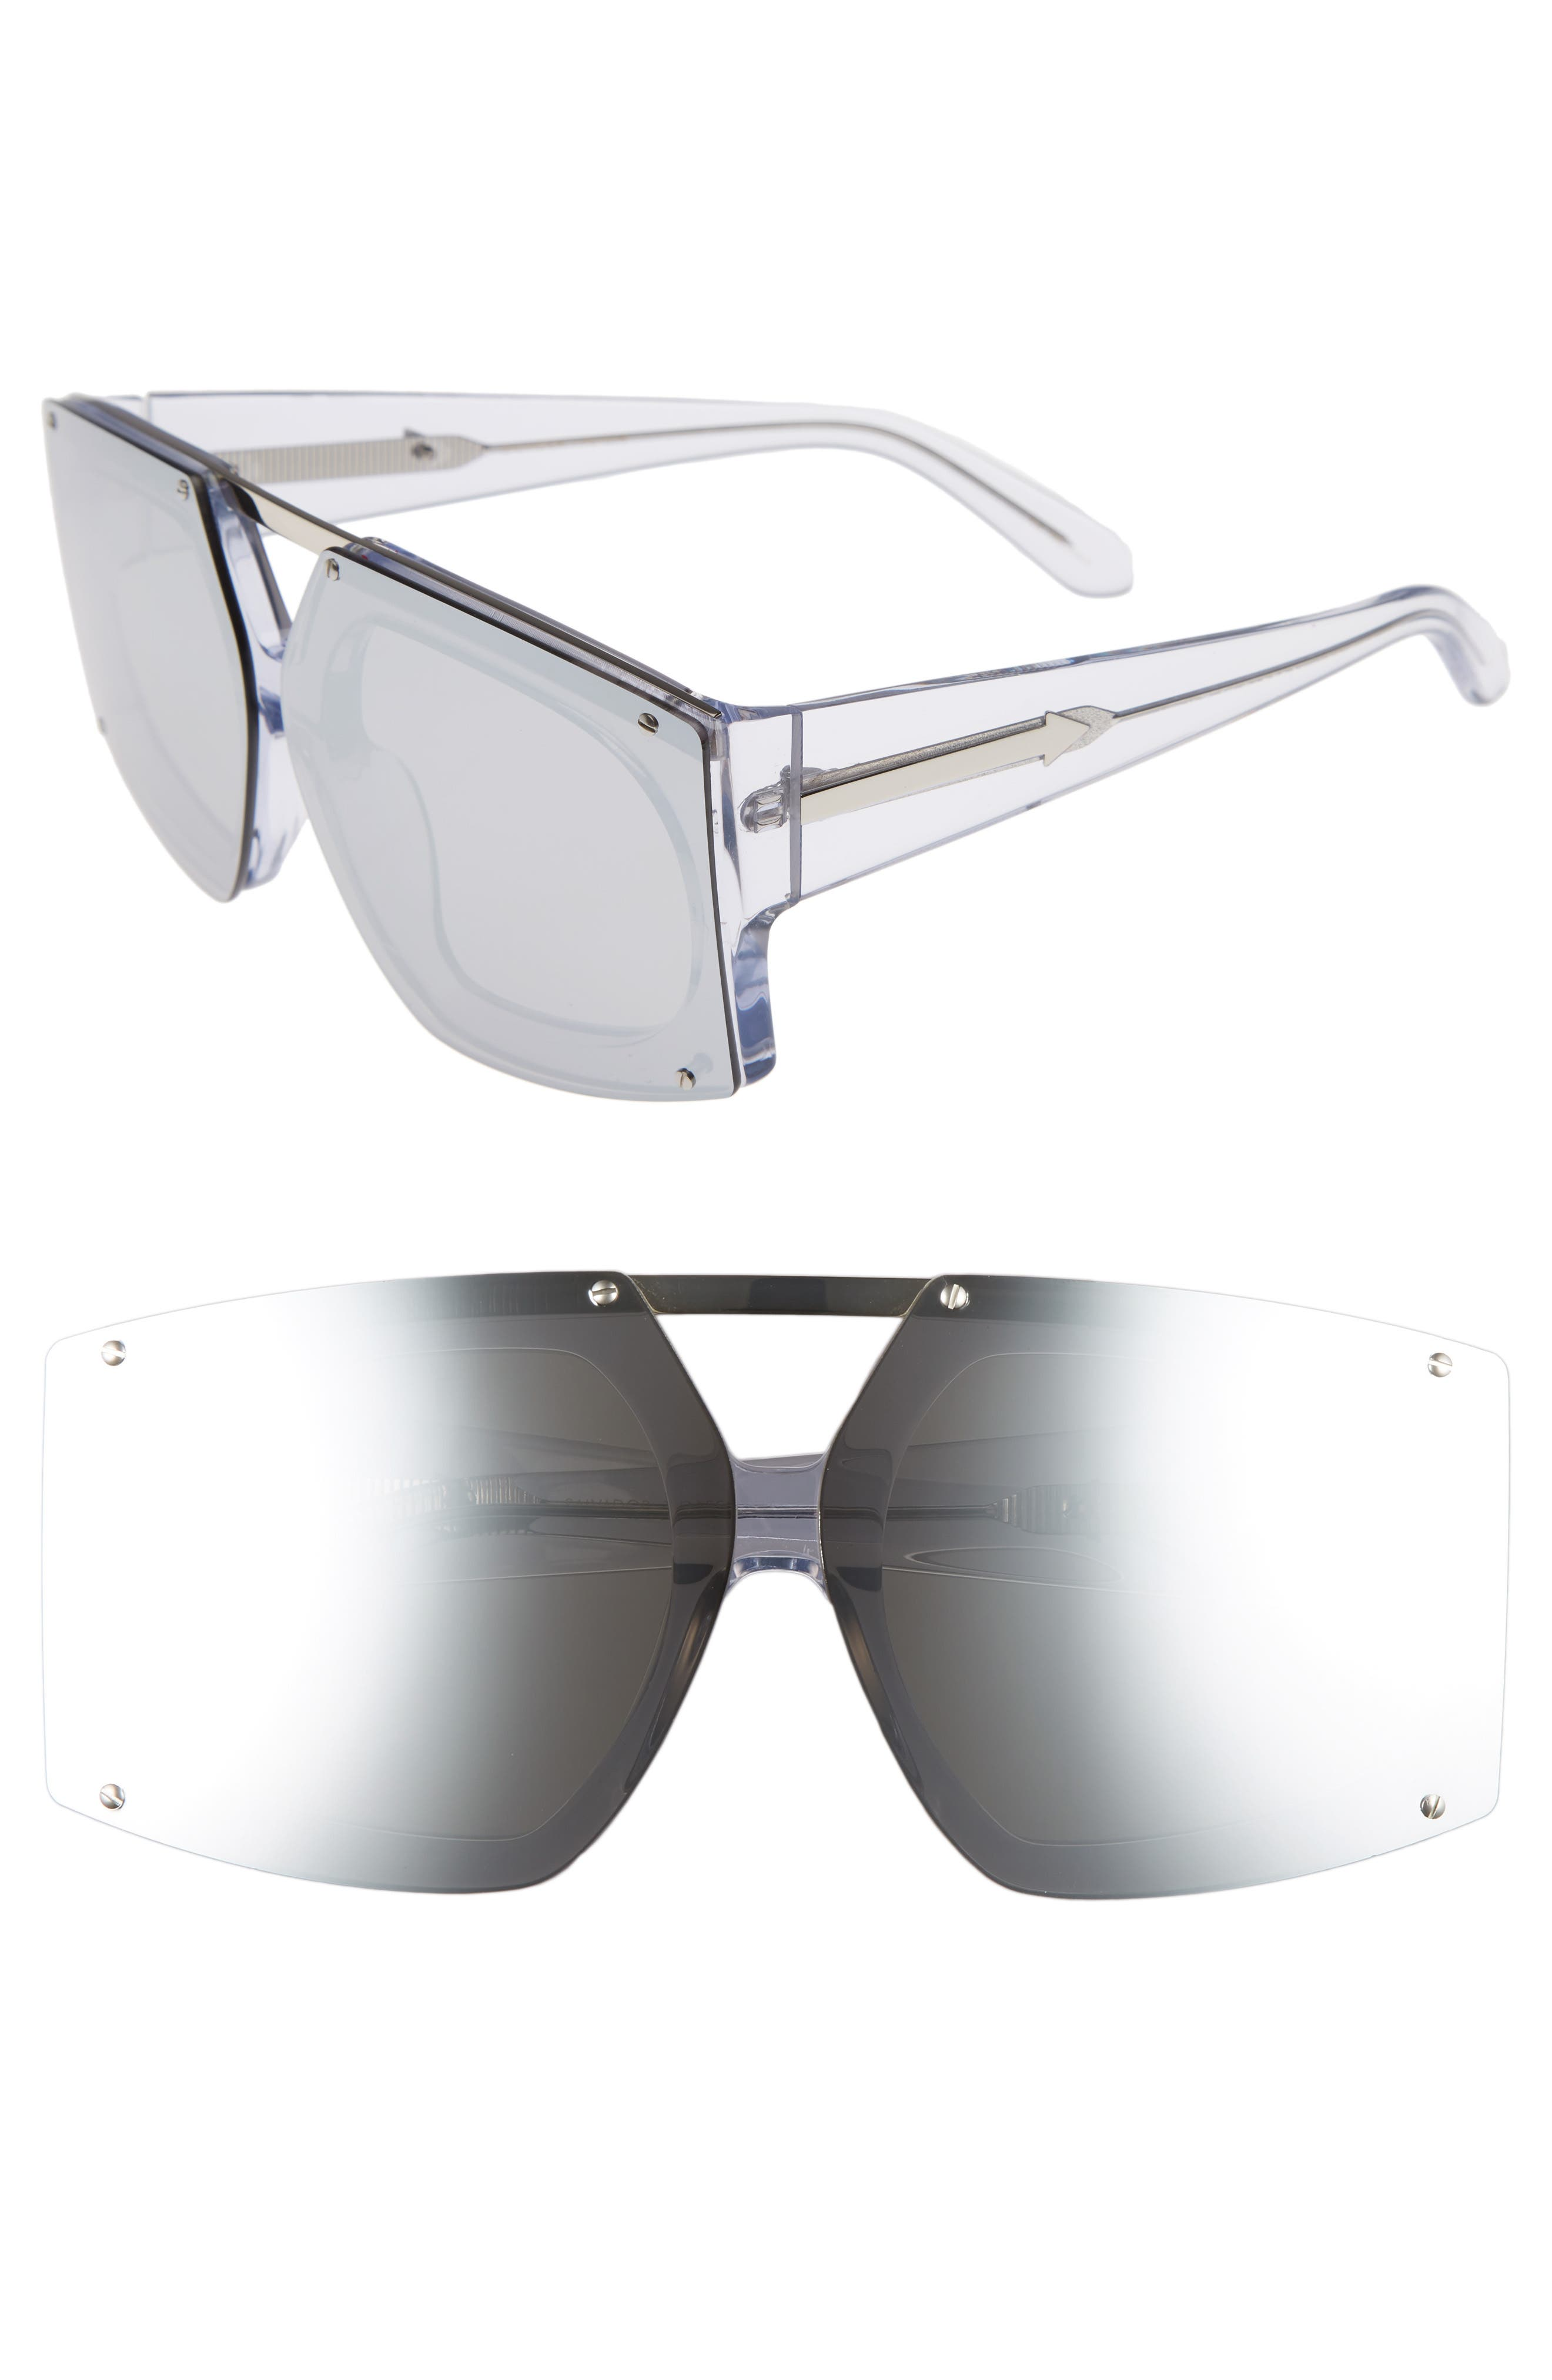 70mm Mirrored Oversized Sunglasses,                             Main thumbnail 1, color,                             Crystal Clear/ Silver